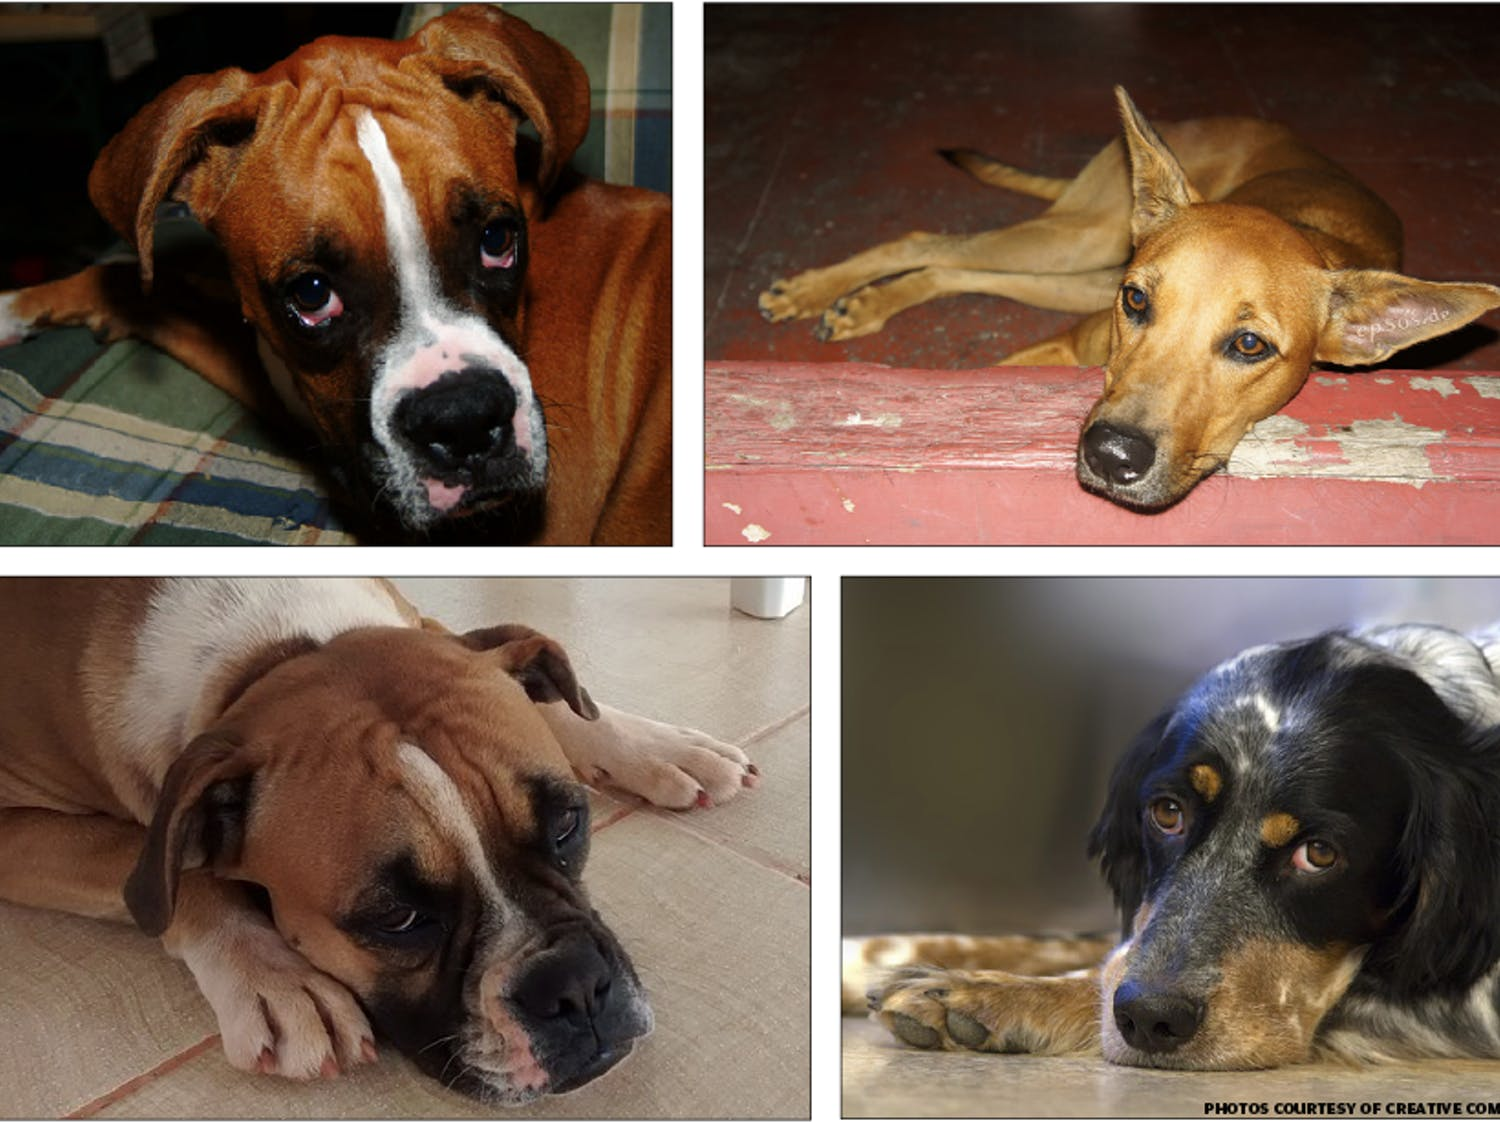 Who made these dogs so sad?